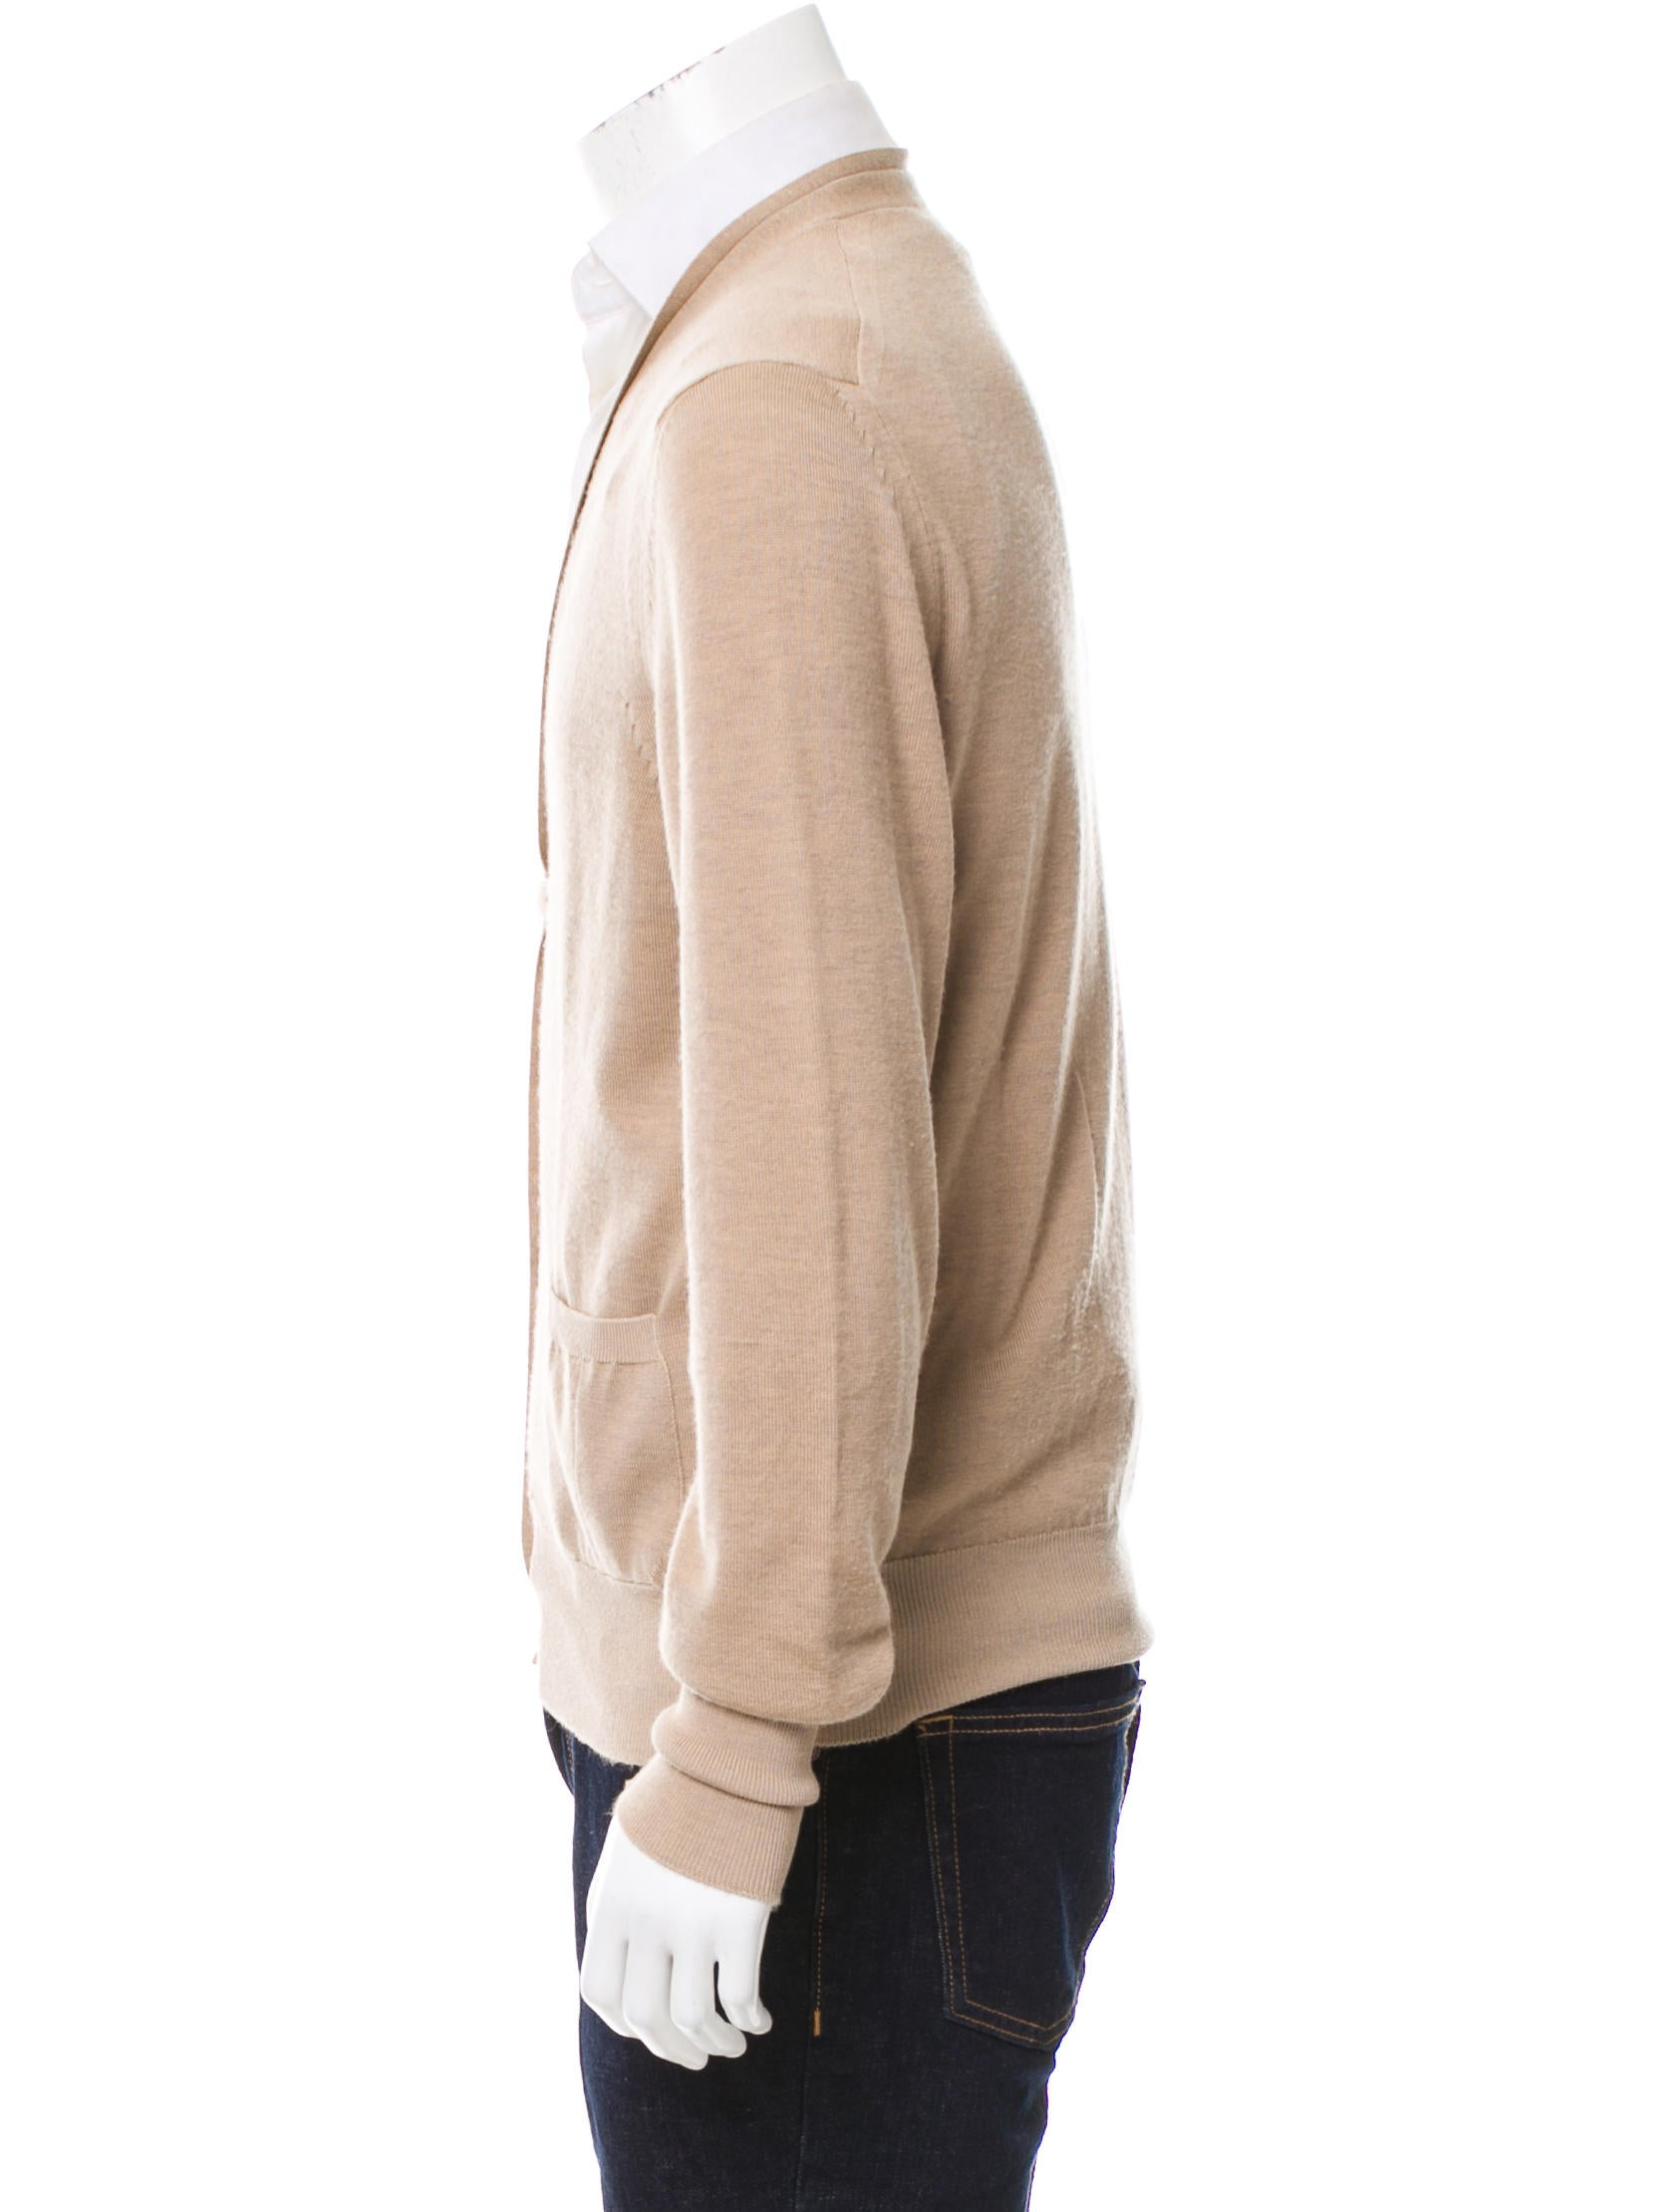 Choose Cashmere Heartland for pure cashmere sweaters and cardigans for men and cashmere sweaters for women. Enjoy the soft luxury of % pure cashmere wool sweaters. Best prices and quality on all the latest styles guaranteed.